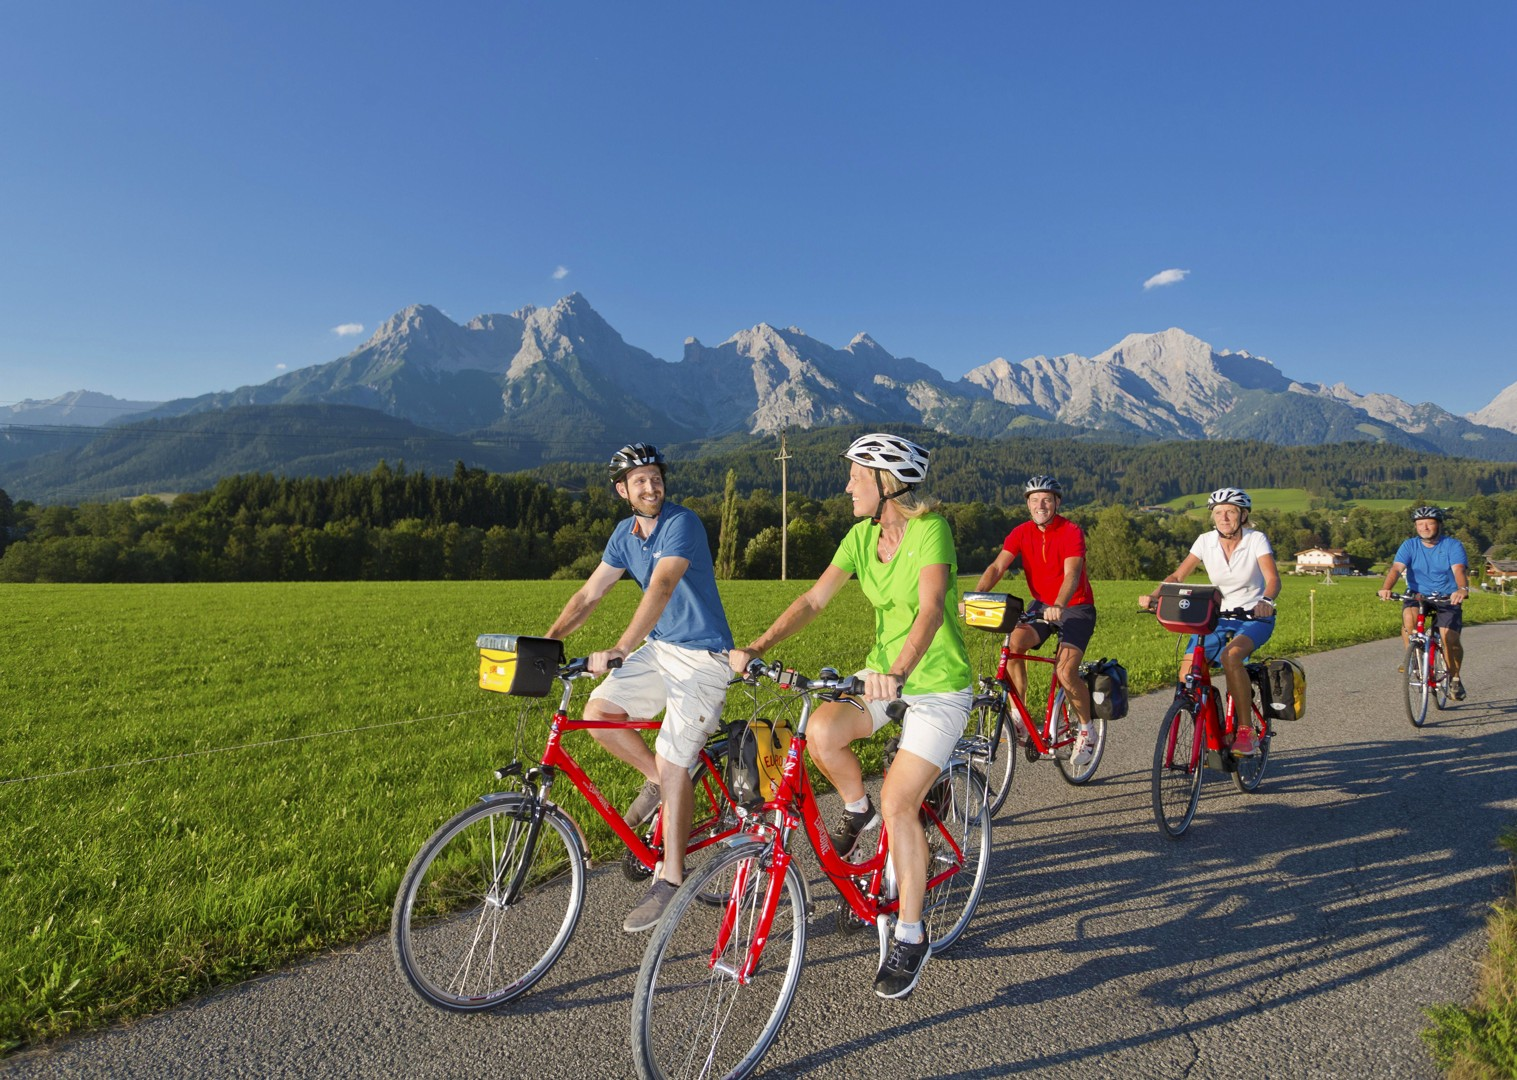 europe-austria--family-cycling-holiday-saddle-skedaddle.jpg - Austria - Tauern Valleys - Self-Guided Family Cycling Holiday - Family Cycling